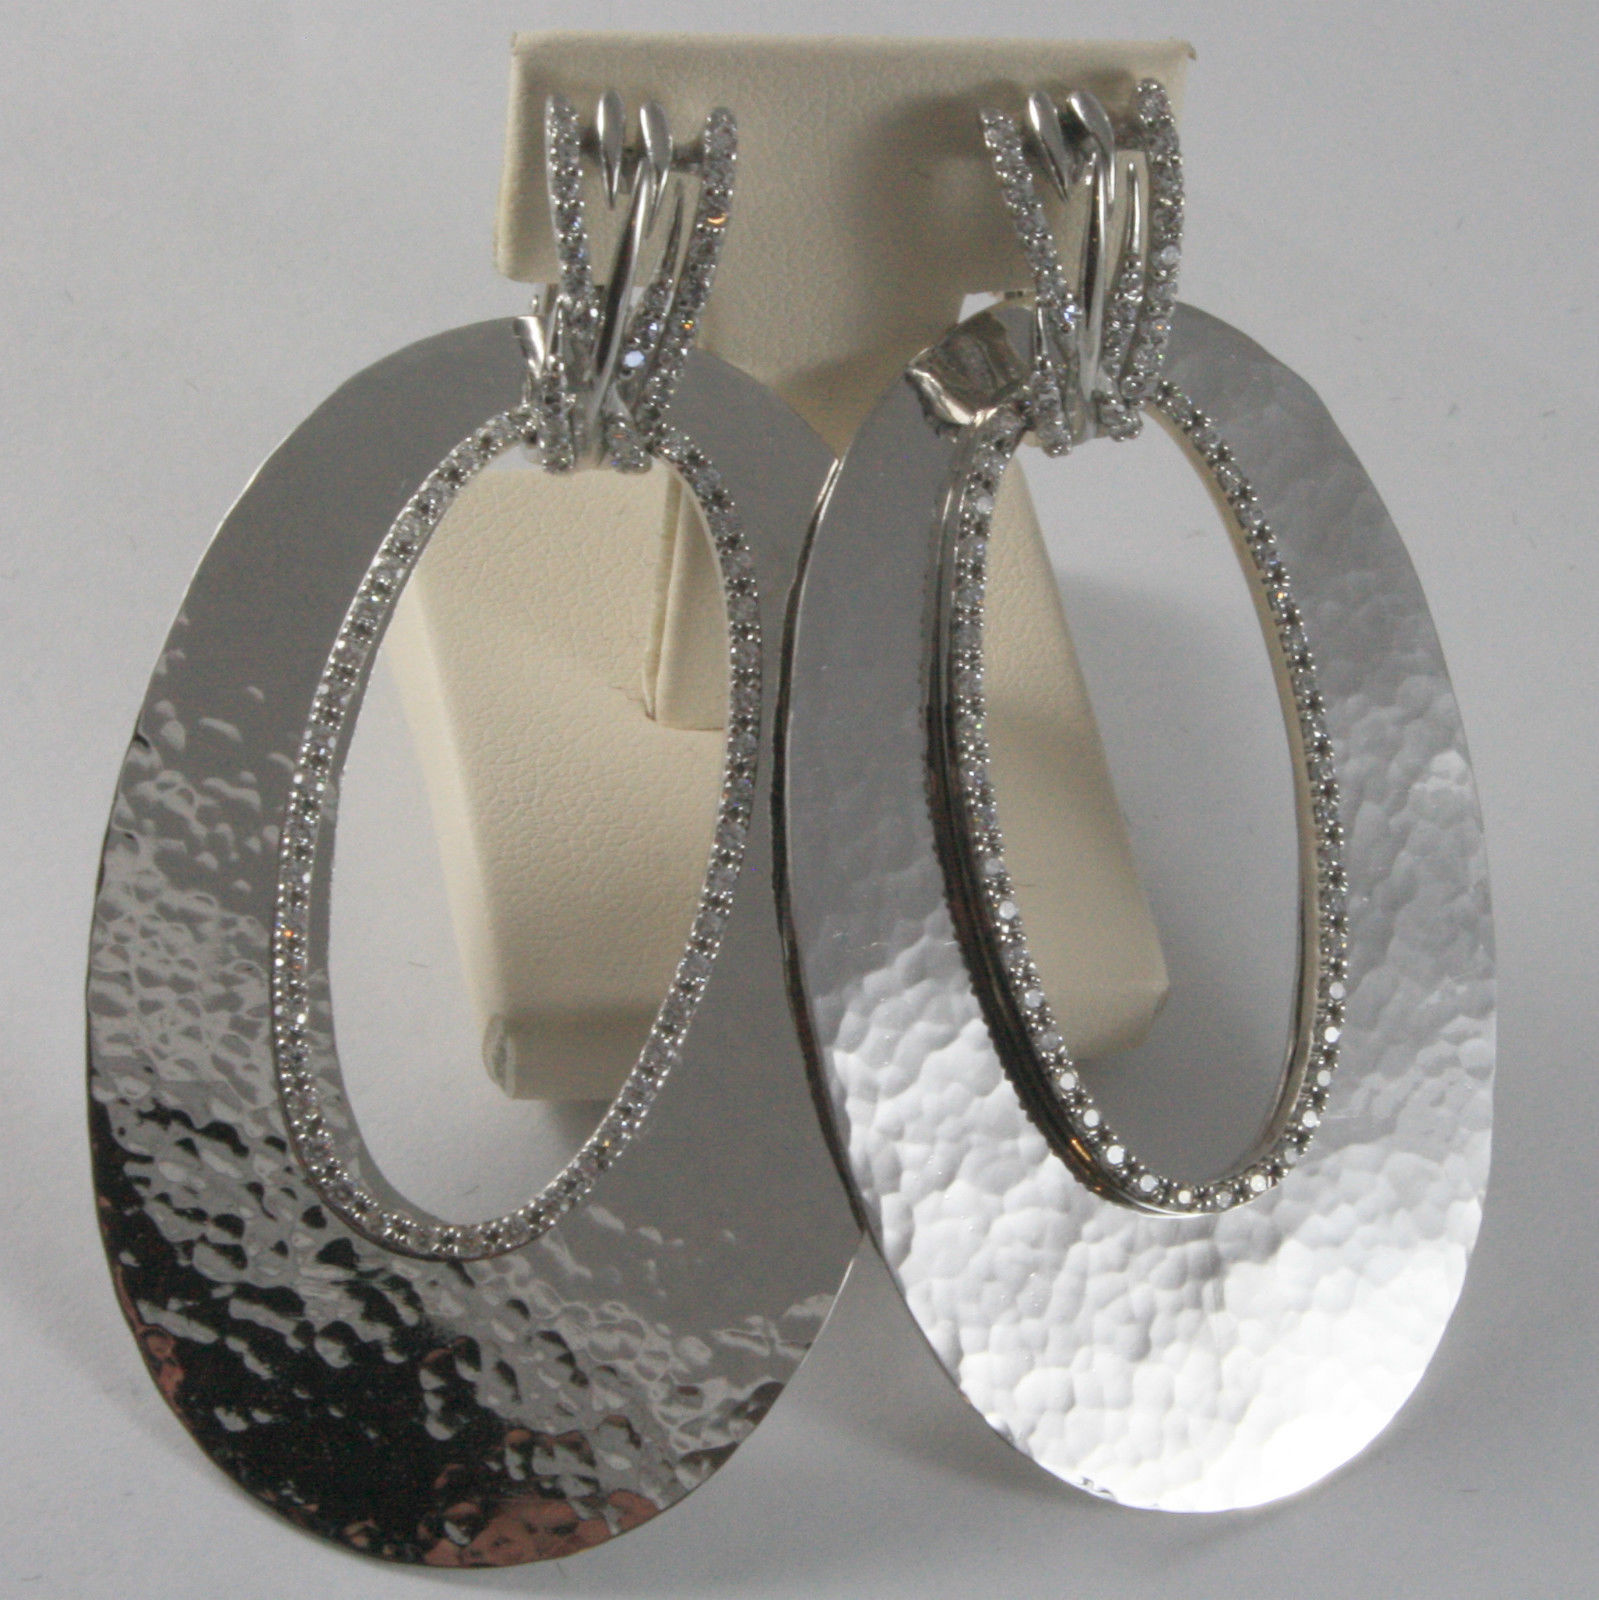 925 RHODIUM SILVER EARRINGS BIG OVAL HAMMERED, MODULAR BY NANIS, MADE IN ITALY